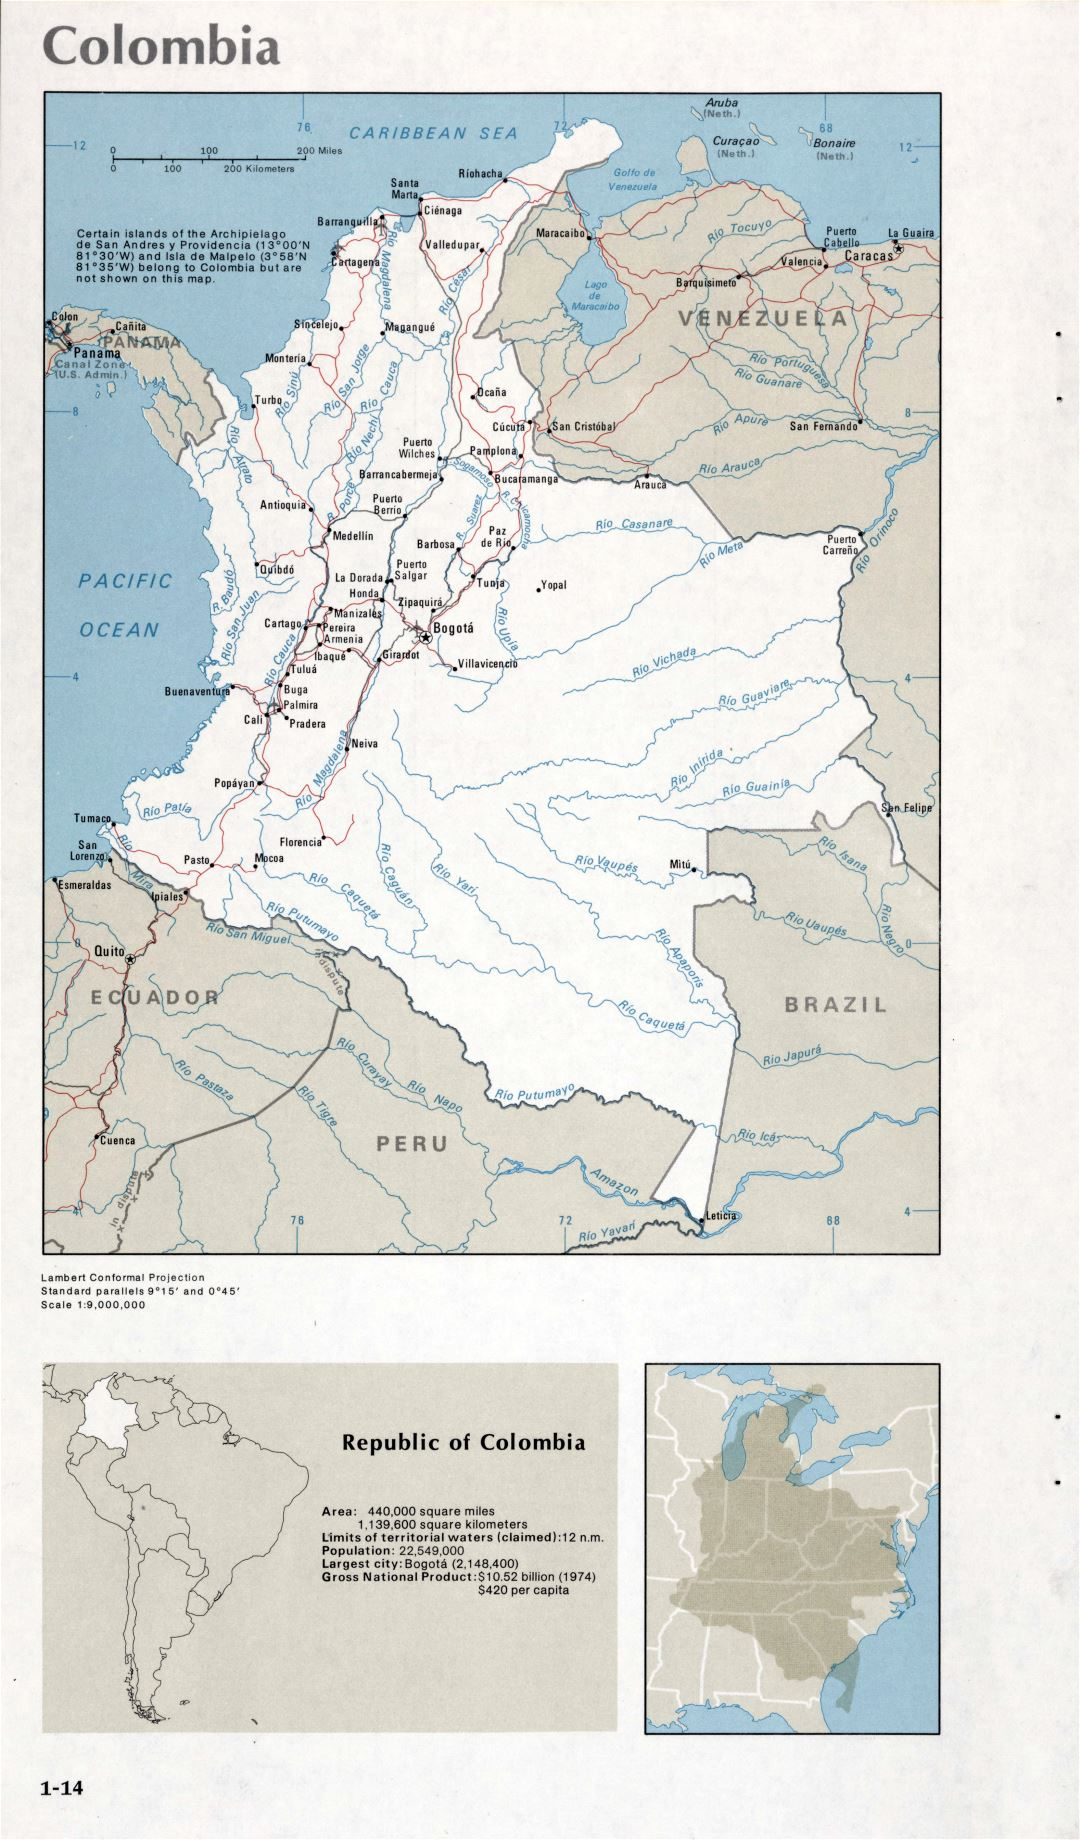 Map of Colombia (1-14)